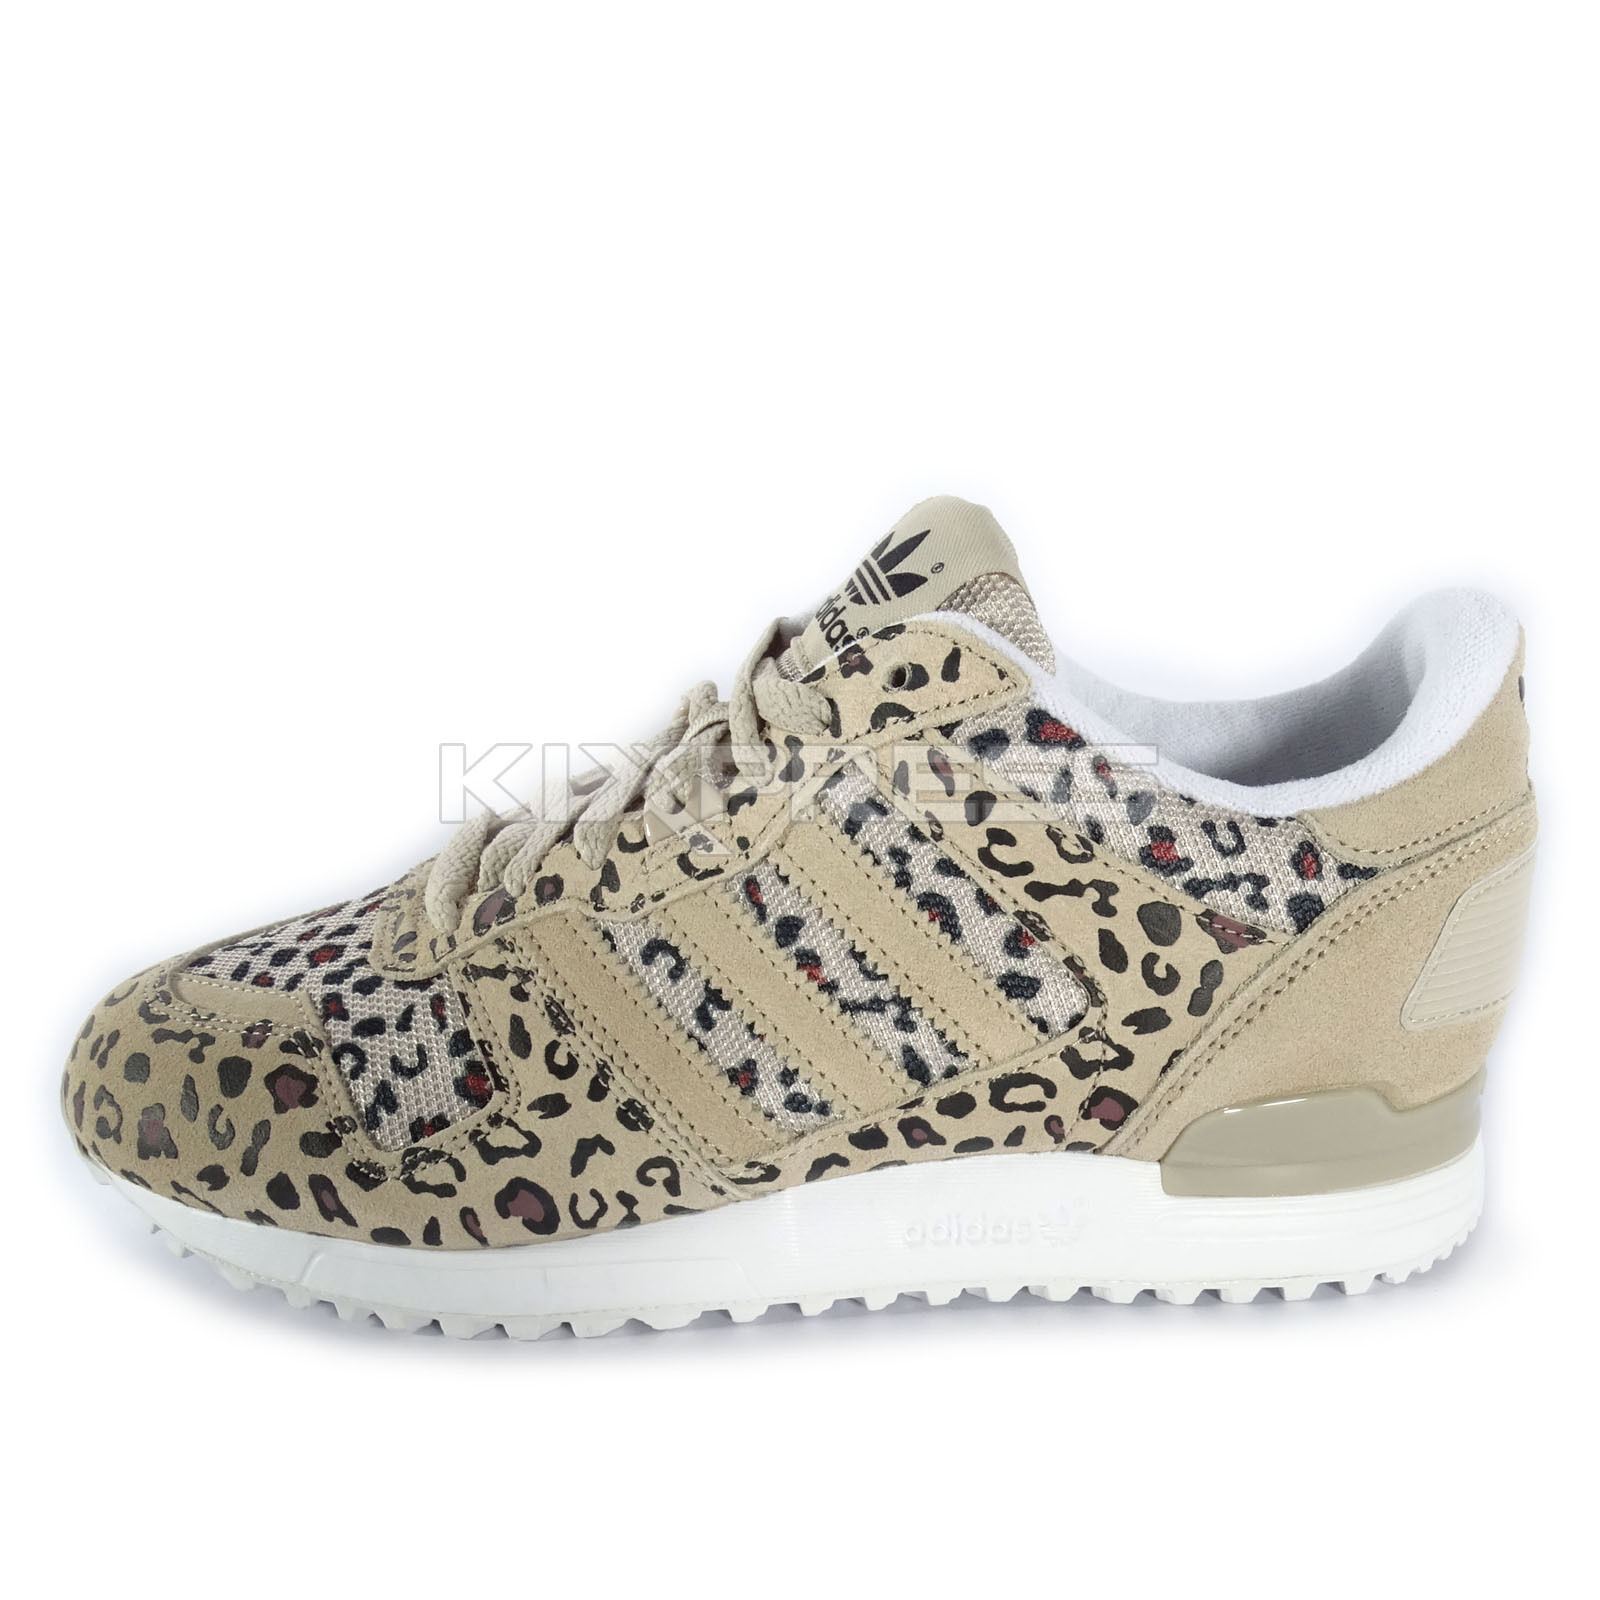 huge discount 87a71 34703 Adidas Originals ZX 700 [B34330] Men Casual Shoes Leopard Khaki/Black